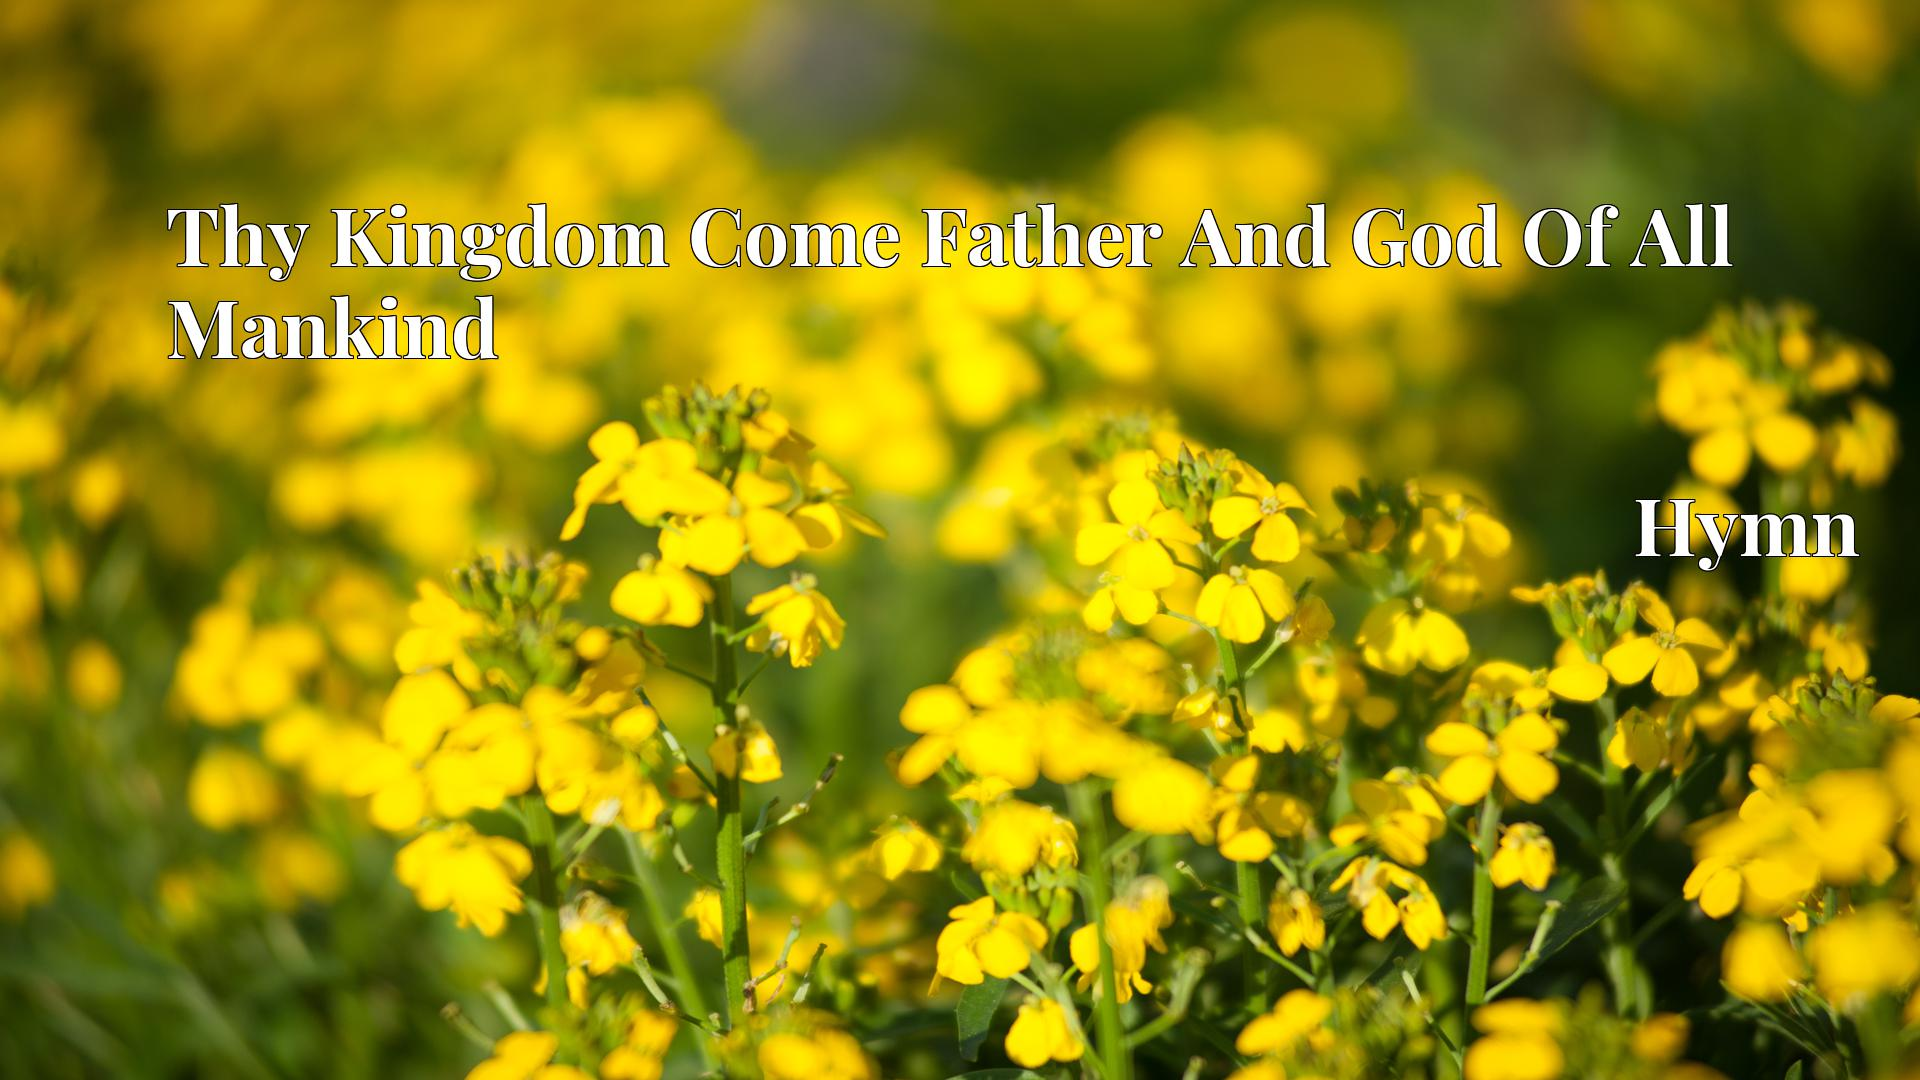 Thy Kingdom Come Father And God Of All Mankind - Hymn